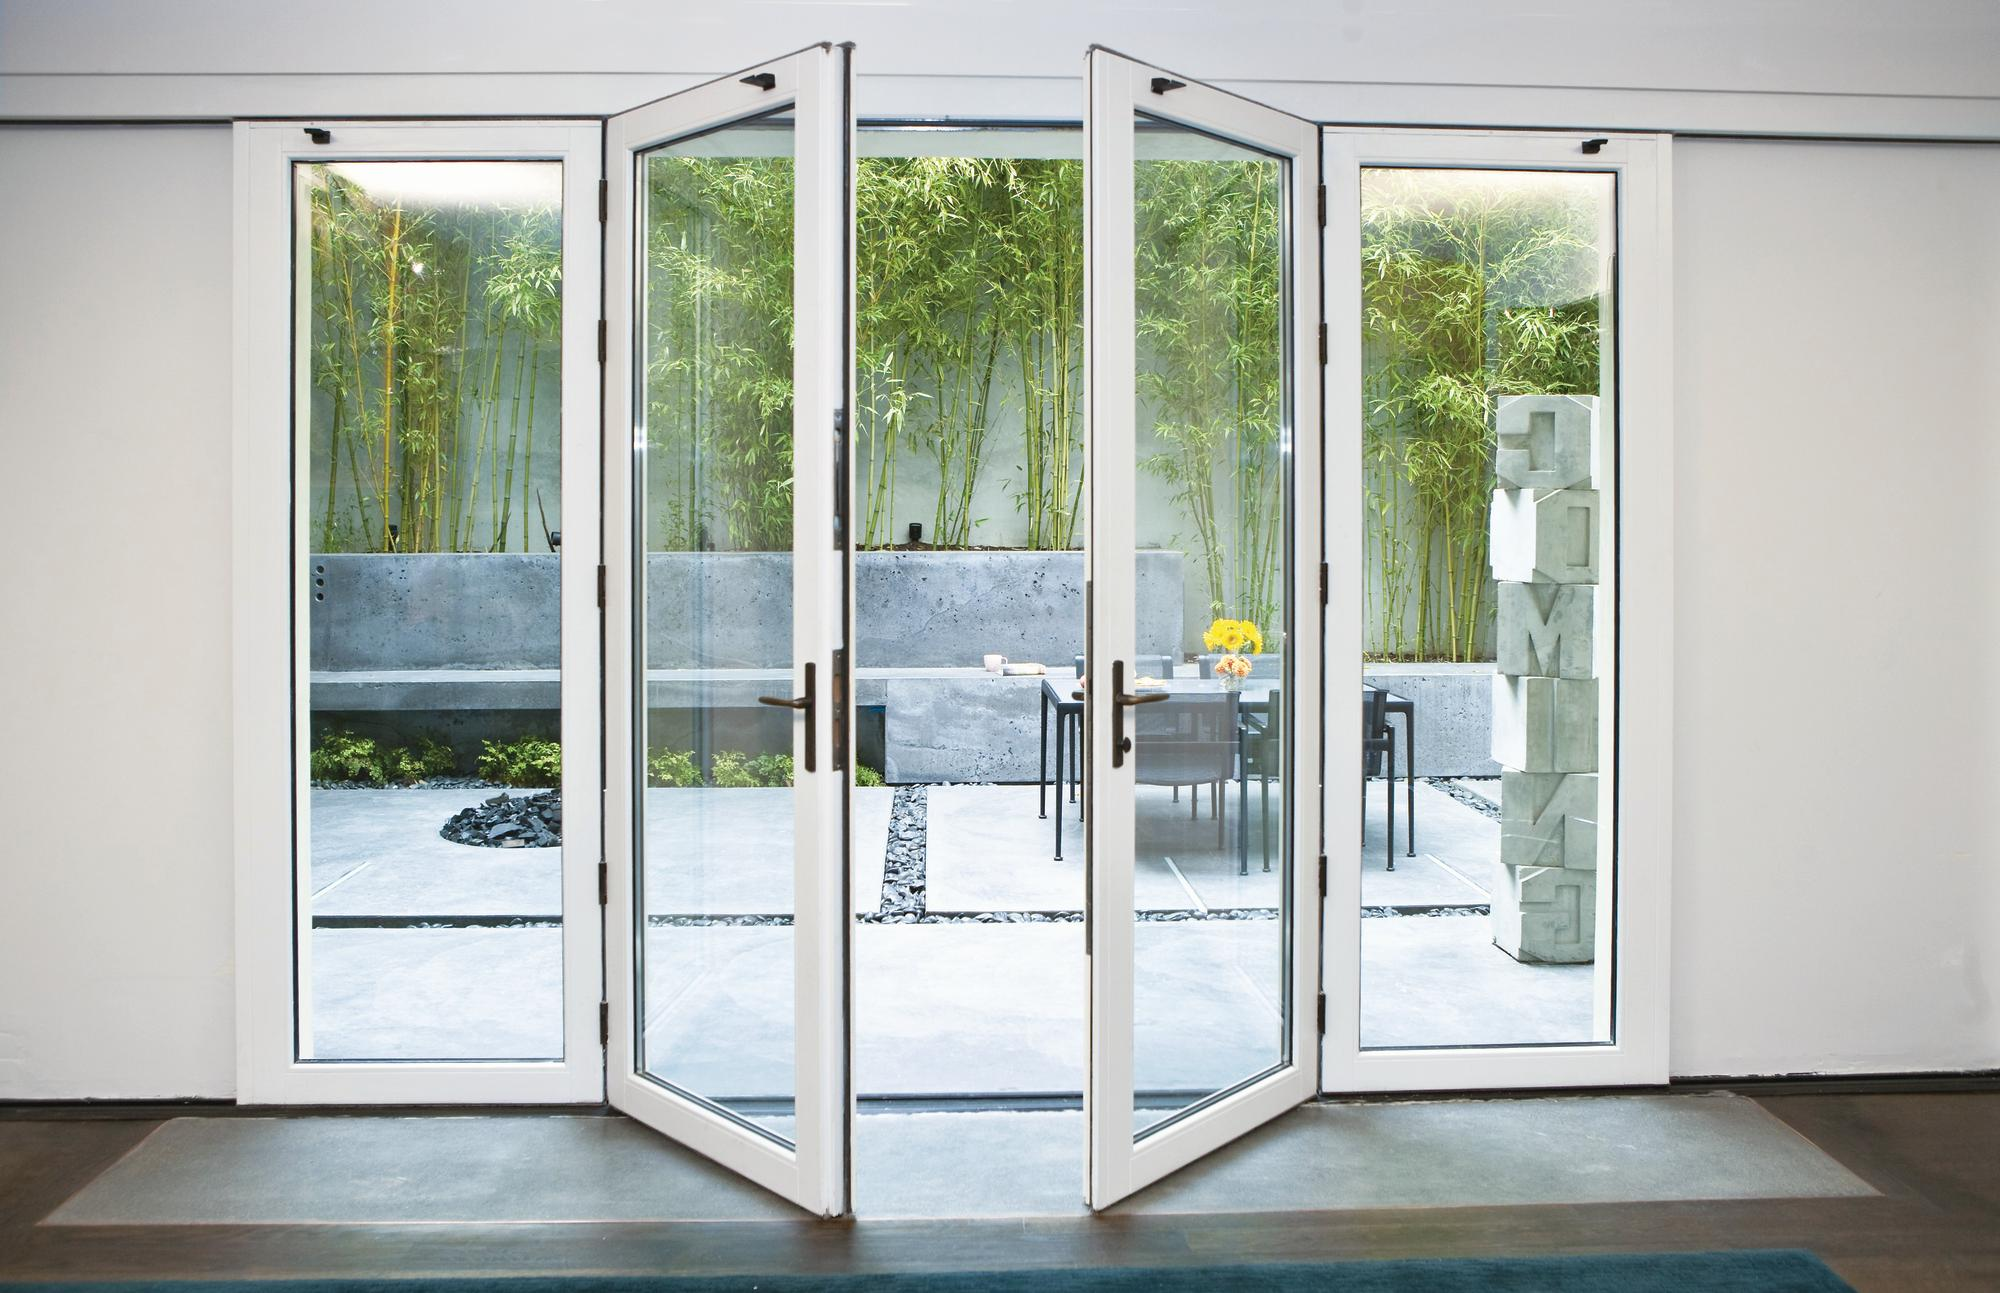 Nana wall systems vsw65 single track sliding system with for Sliding glass doors that look like french doors